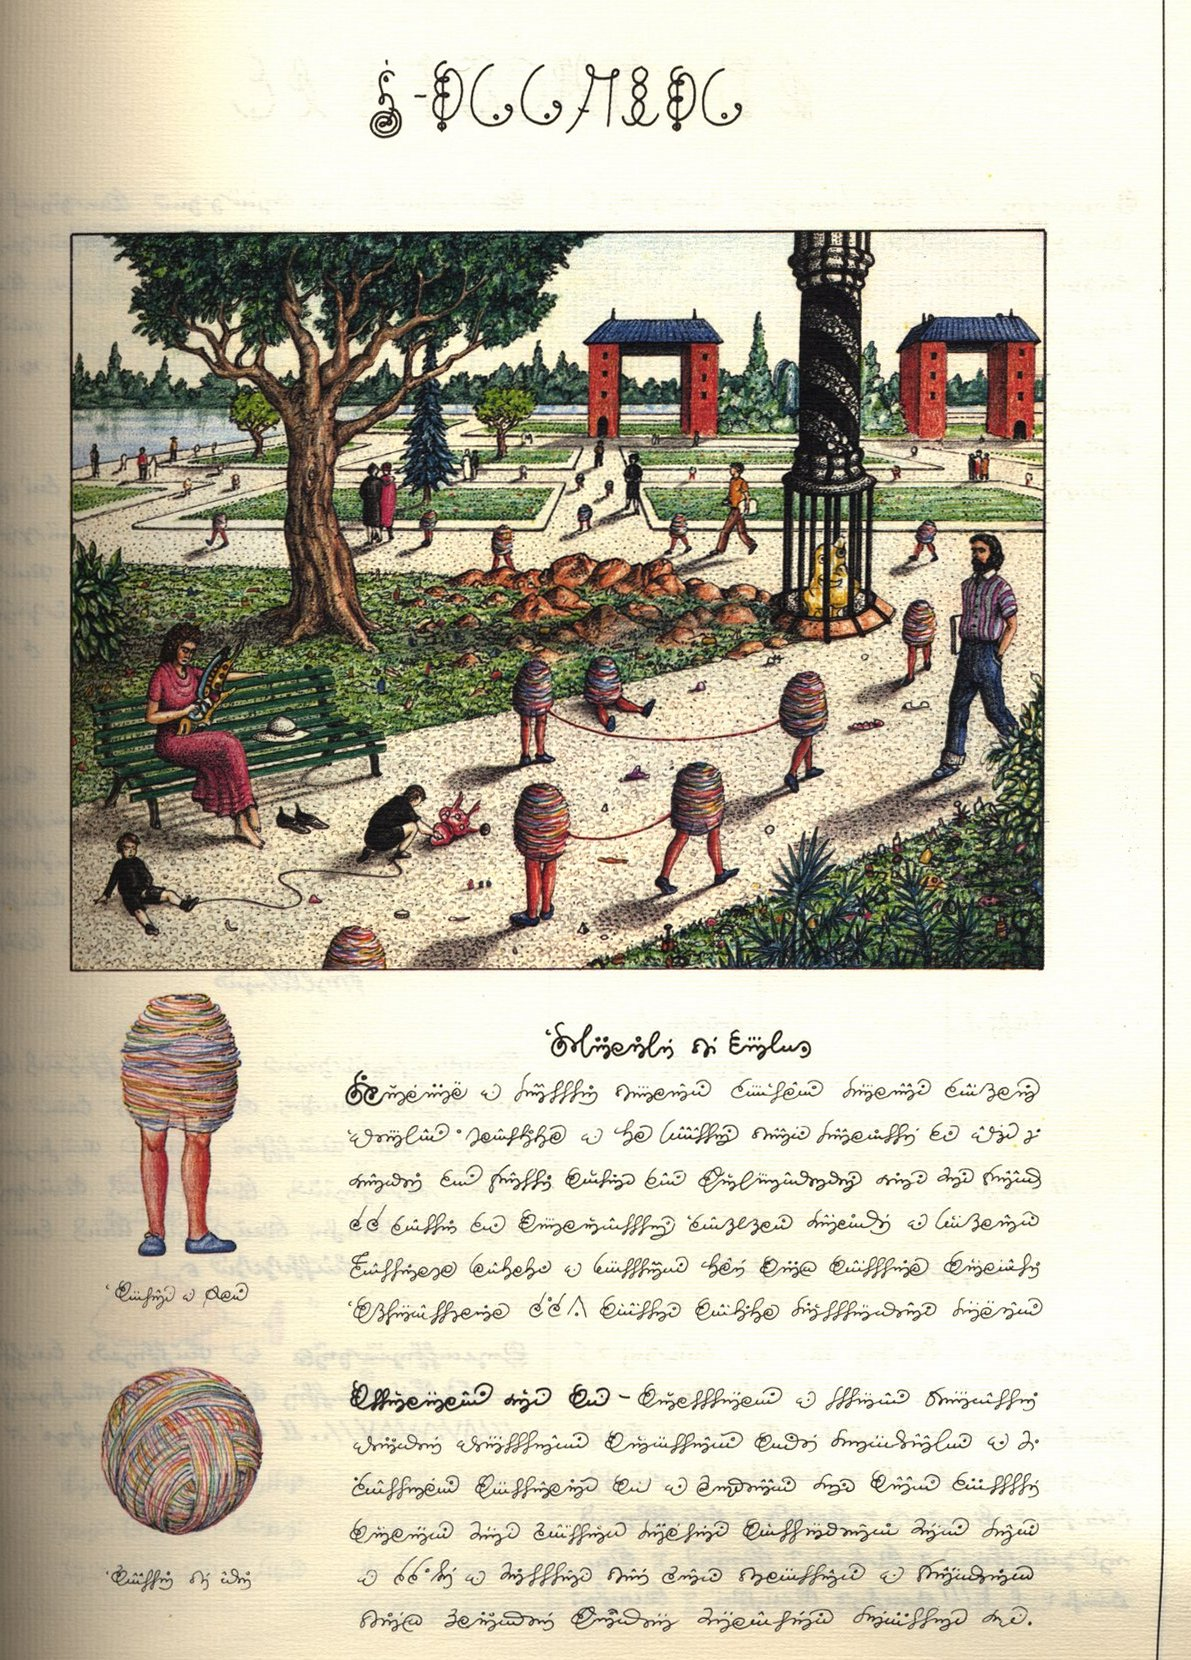 Luigi Serafini. Codex Seraphinianus. — New York : Abbeville Press, 1983